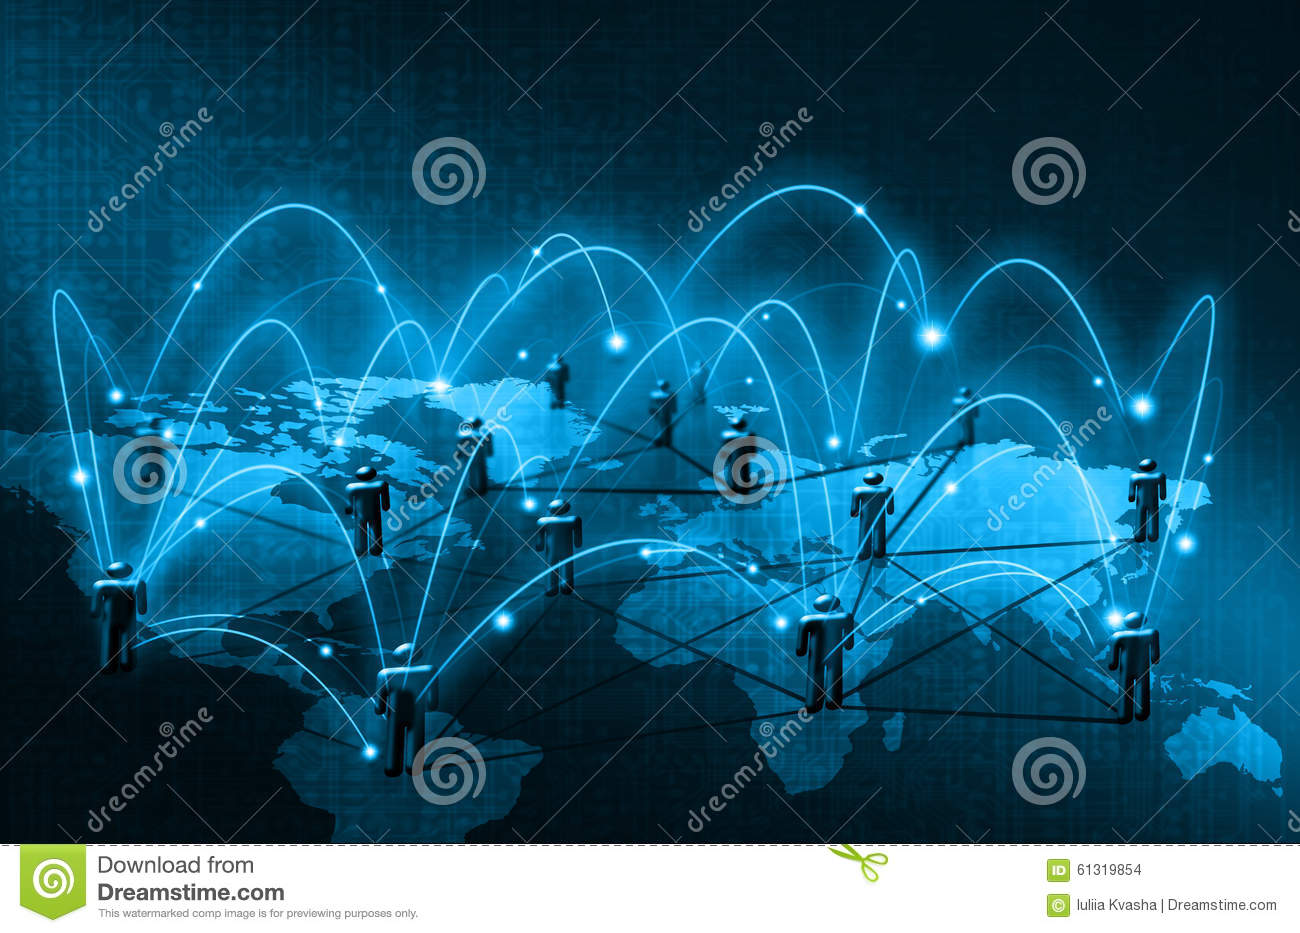 World map on a technological background glowing stock royalty free illustration download world map on a technological background glowing stock gumiabroncs Gallery